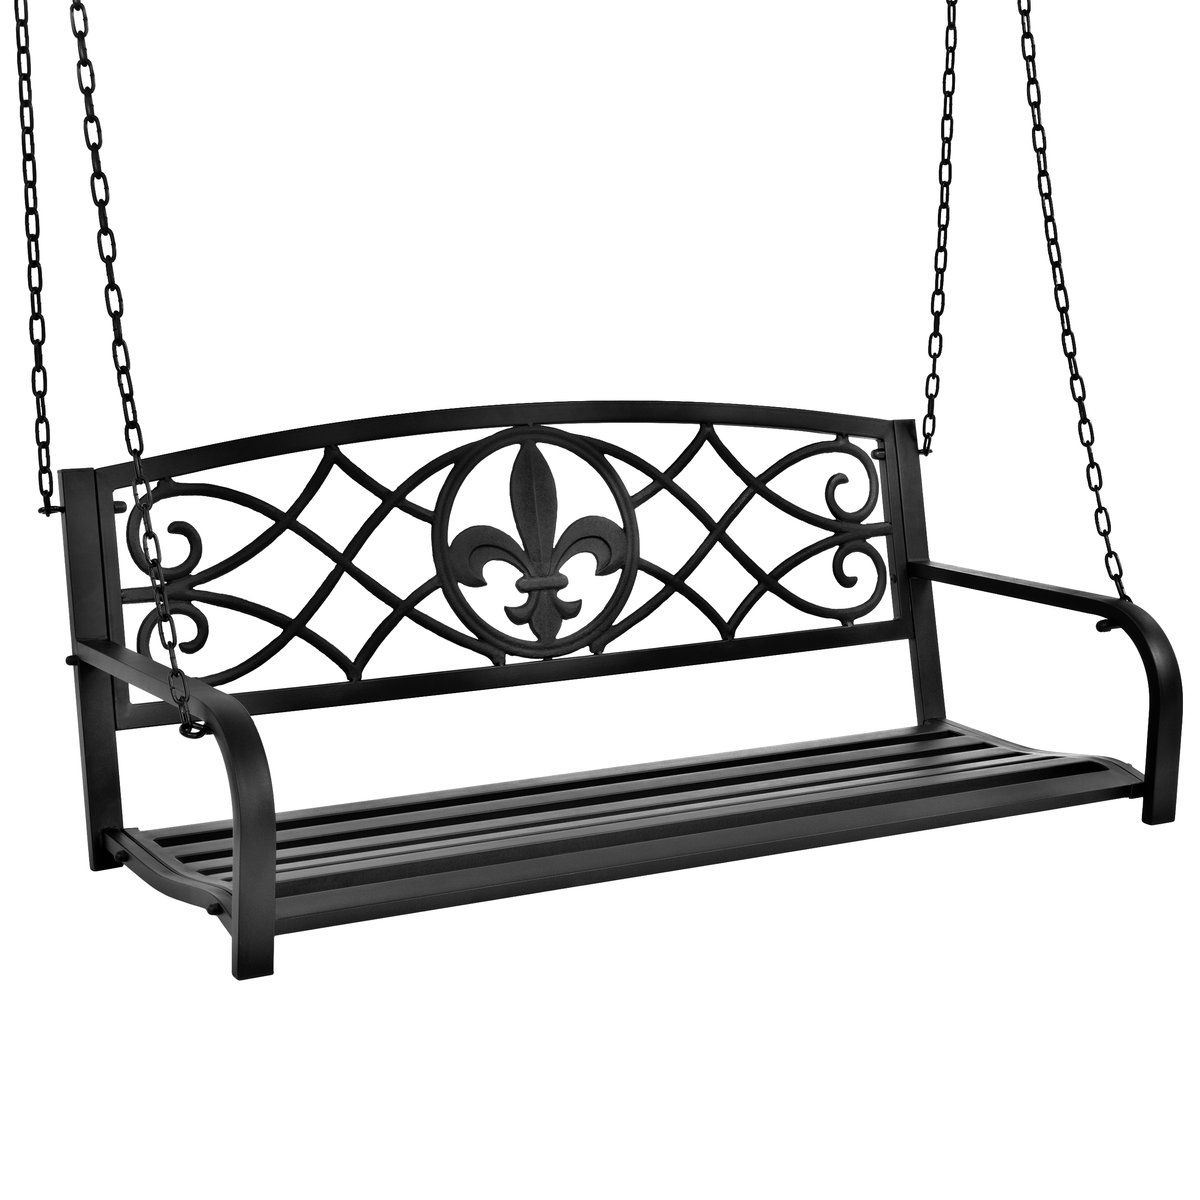 Outdoor Metal Hanging 2 Person Swing Bench W/ Fleur De Lis For 2 Person Black Steel Outdoor Swings (View 9 of 25)